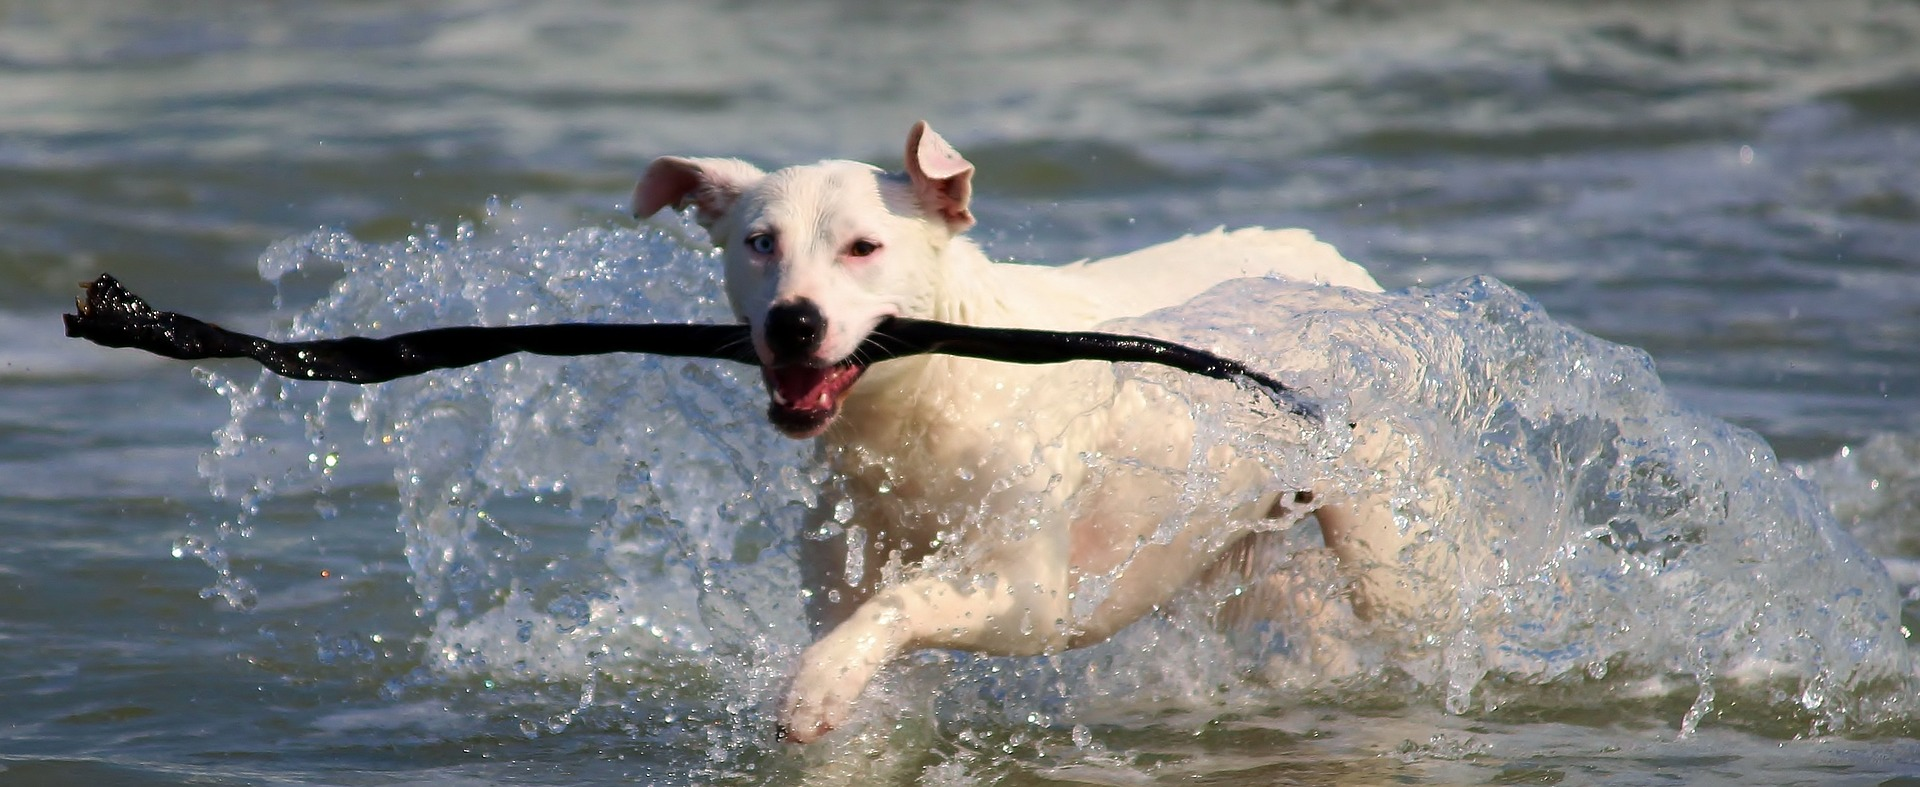 Dogs who swim may be prone to ear infections